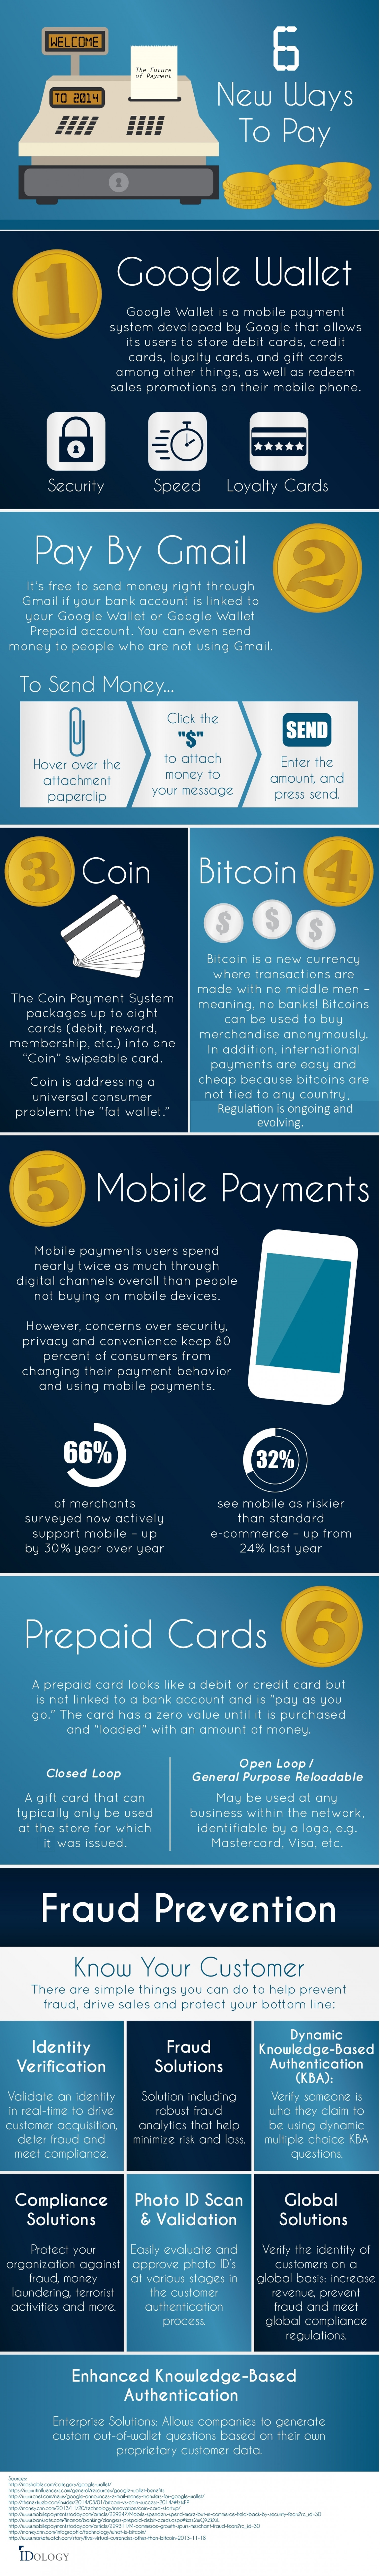 6 New Ways to Pay Infographic